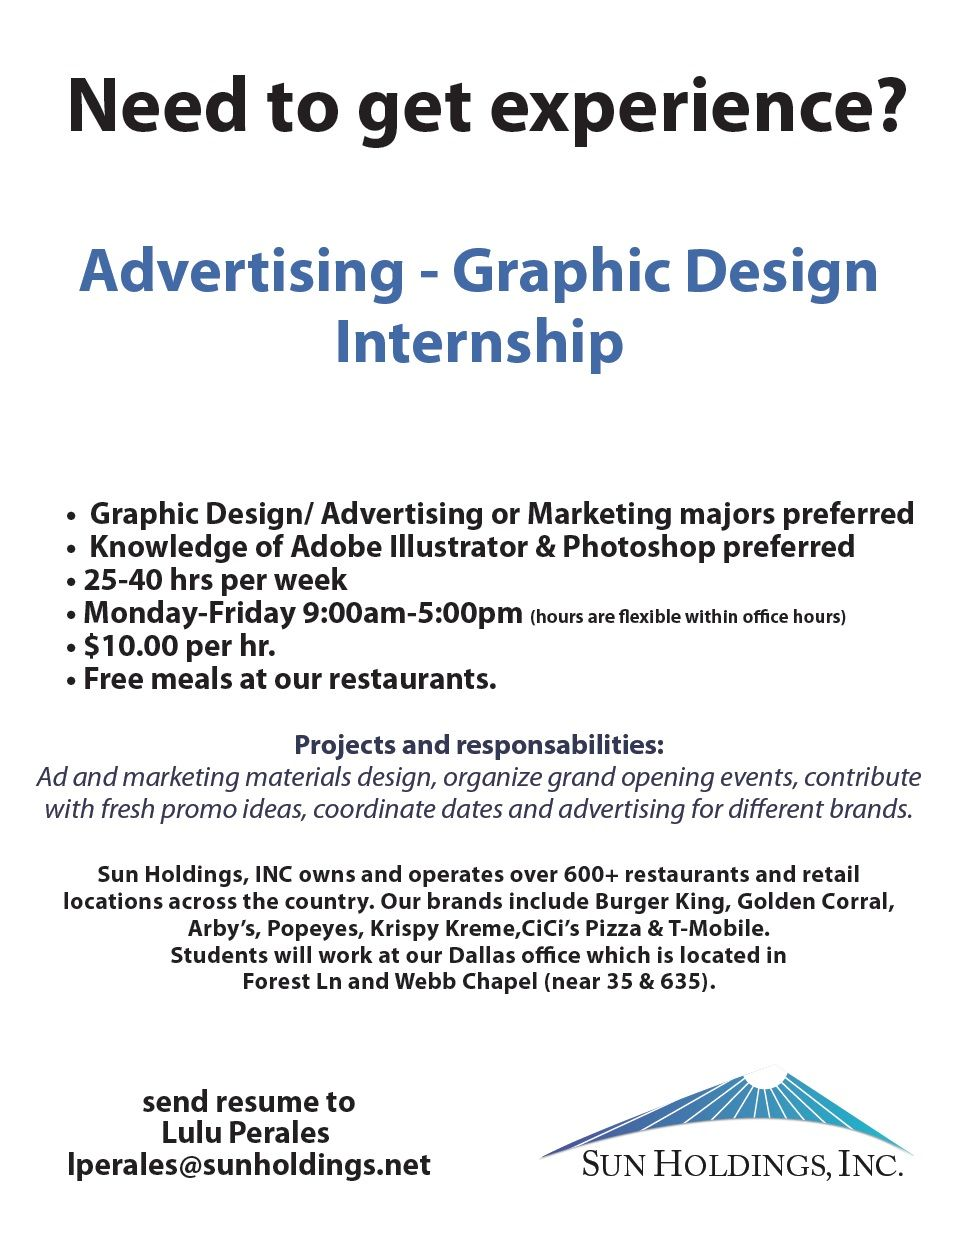 Sun Holdings is looking for a Graphic Design Intern in ...